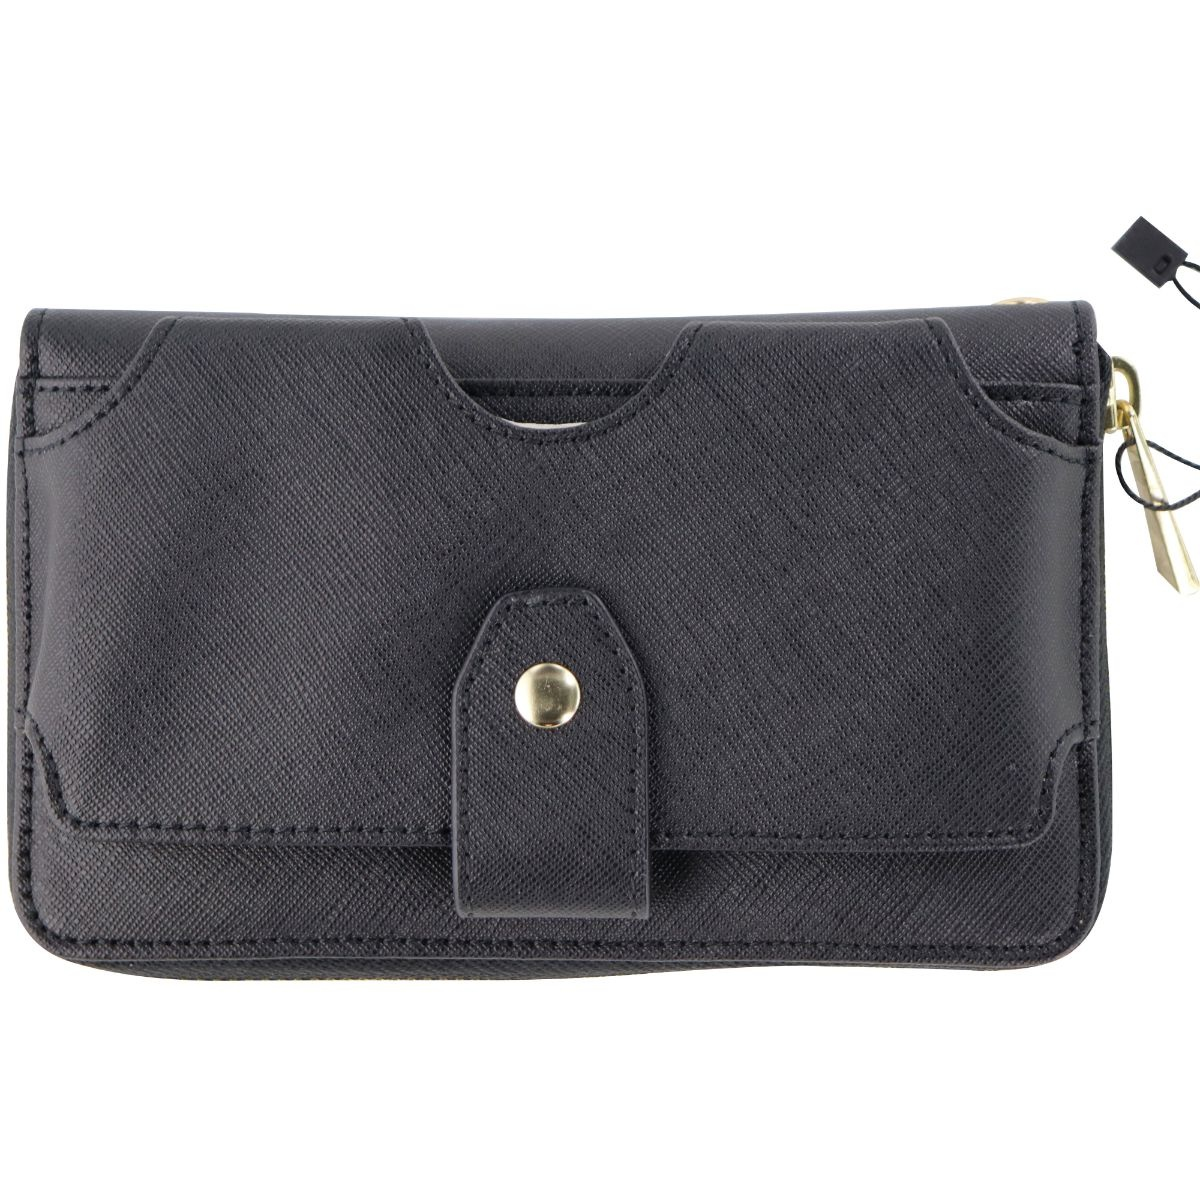 Universal Wallet Case with Wristlet Strap and Zippered Storage Area - Black